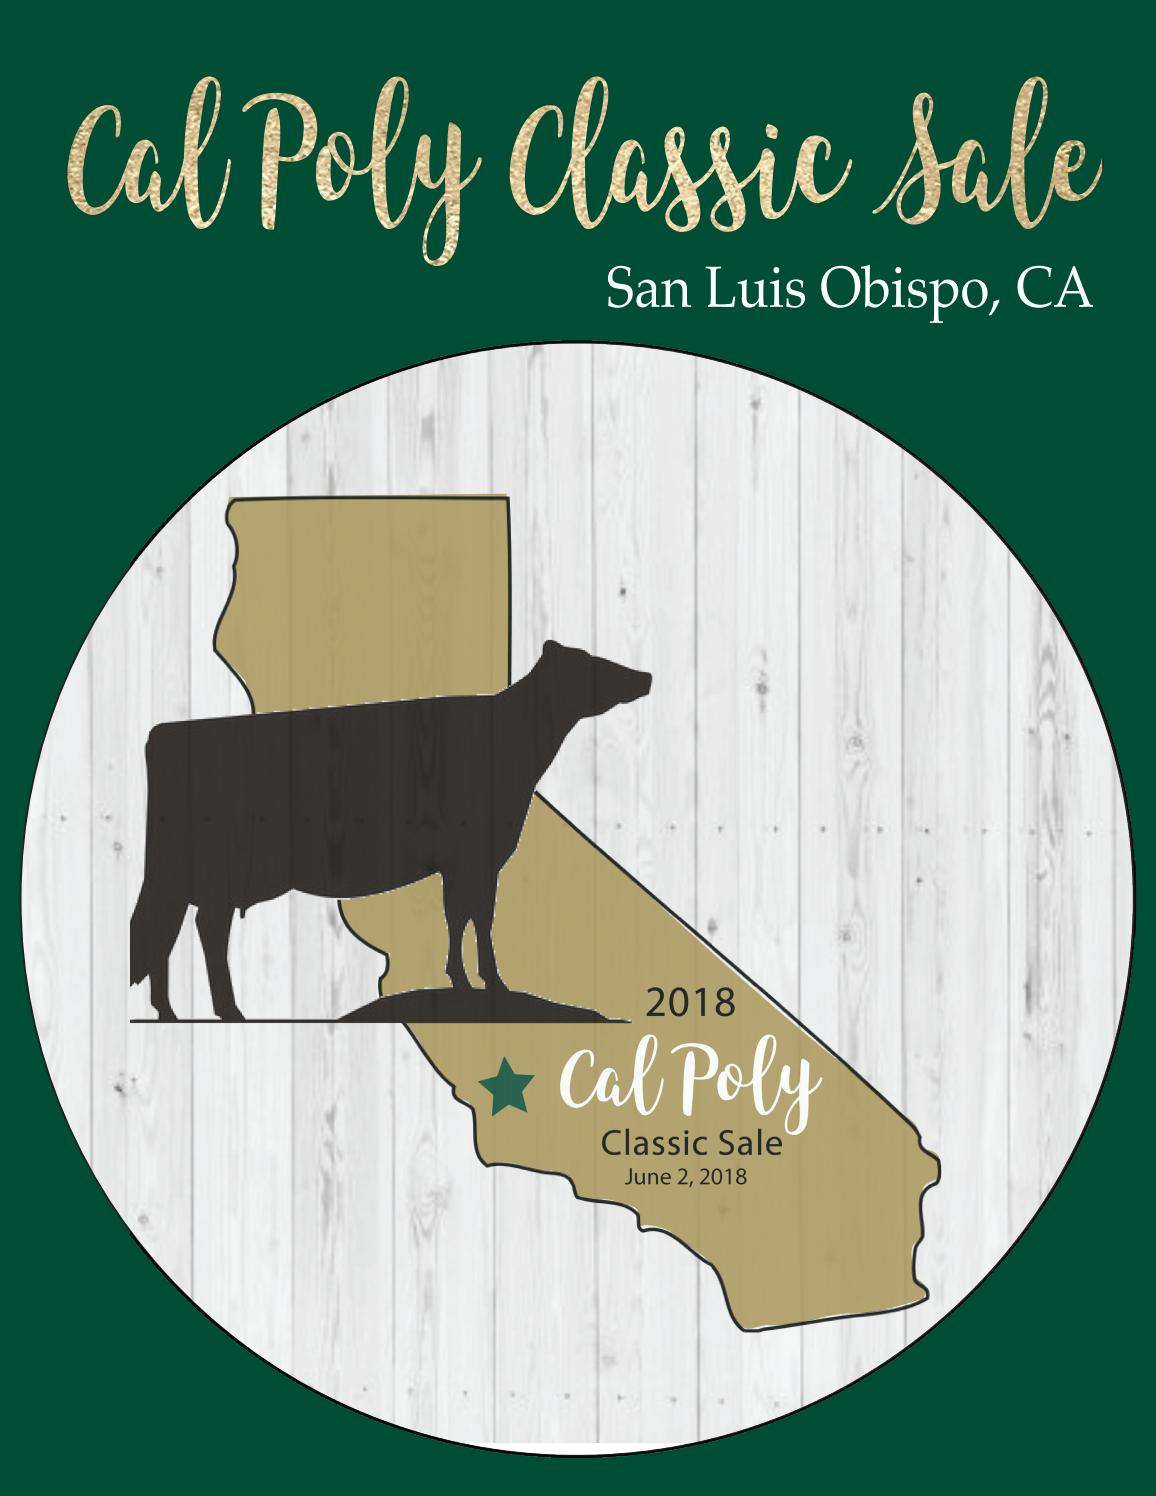 Cal Poly Classic Sale 2018 By Cowsmopolitan Dairy Magazine Issuu Ceres 225 Gr